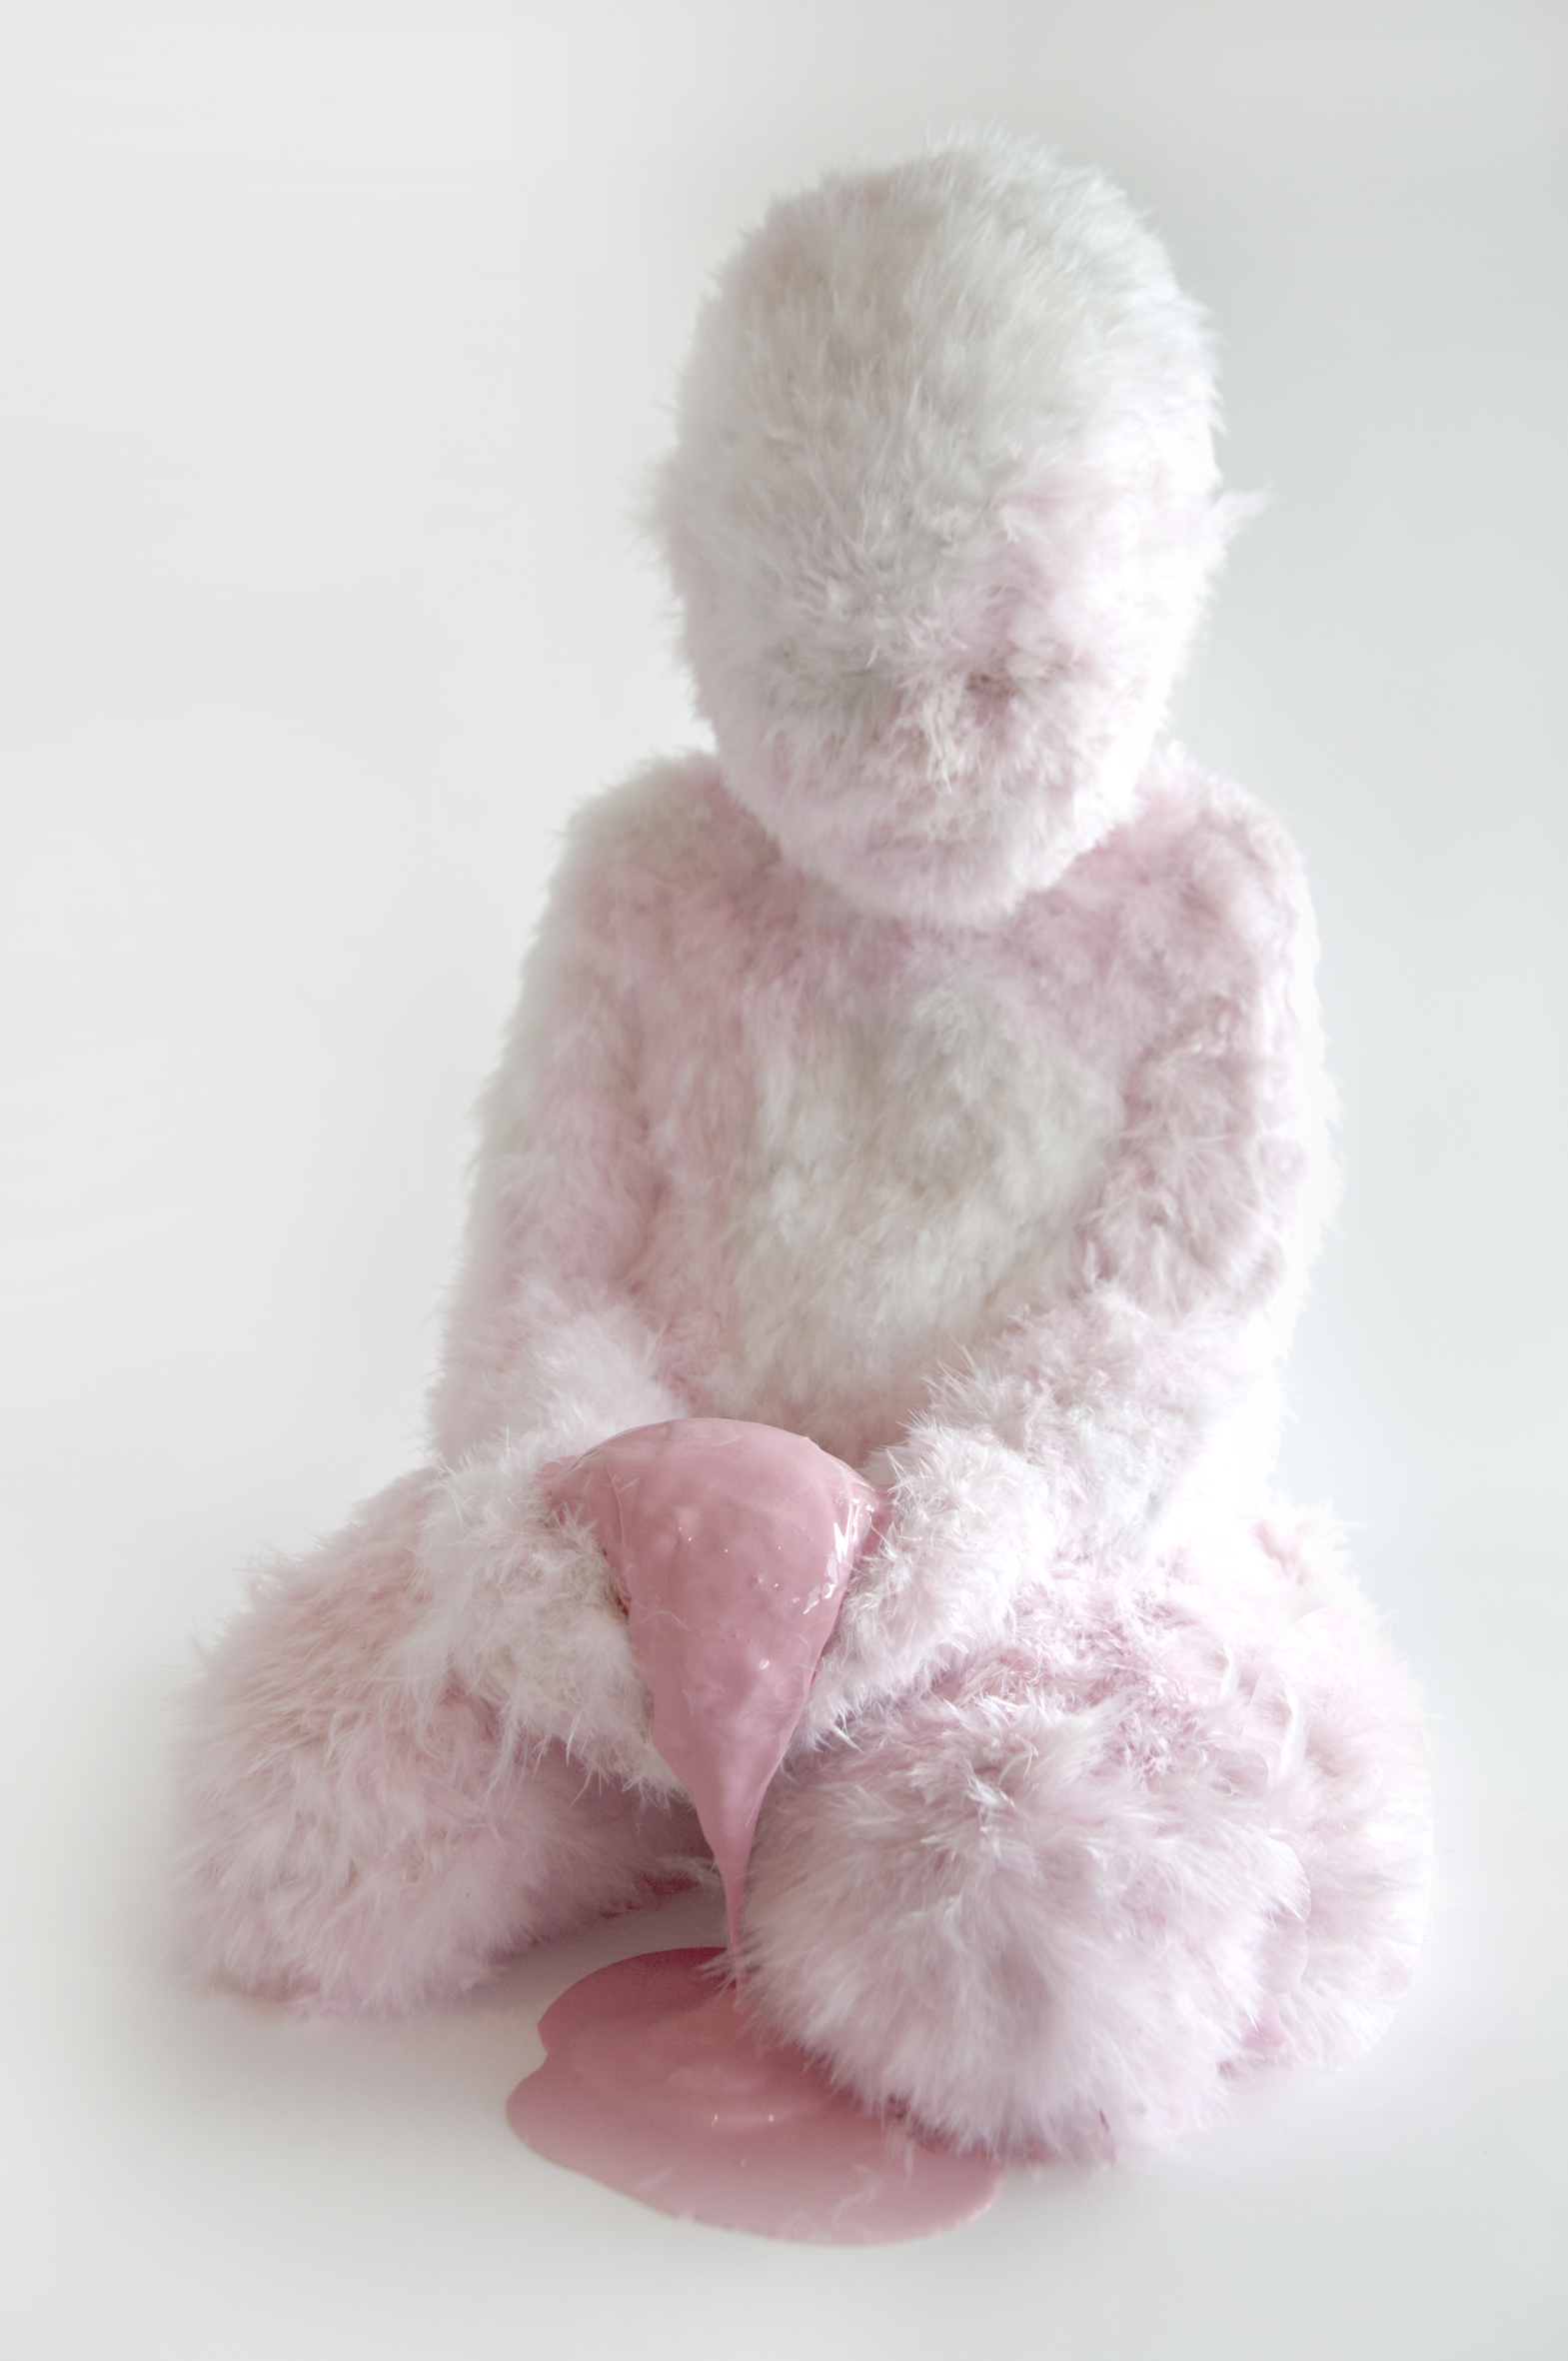 LUCY GLENDINNING_Pink and Fluffy Little Darling_2014_Courtesy de l+ö+ç+ûartiste et de la Galerie Da-End